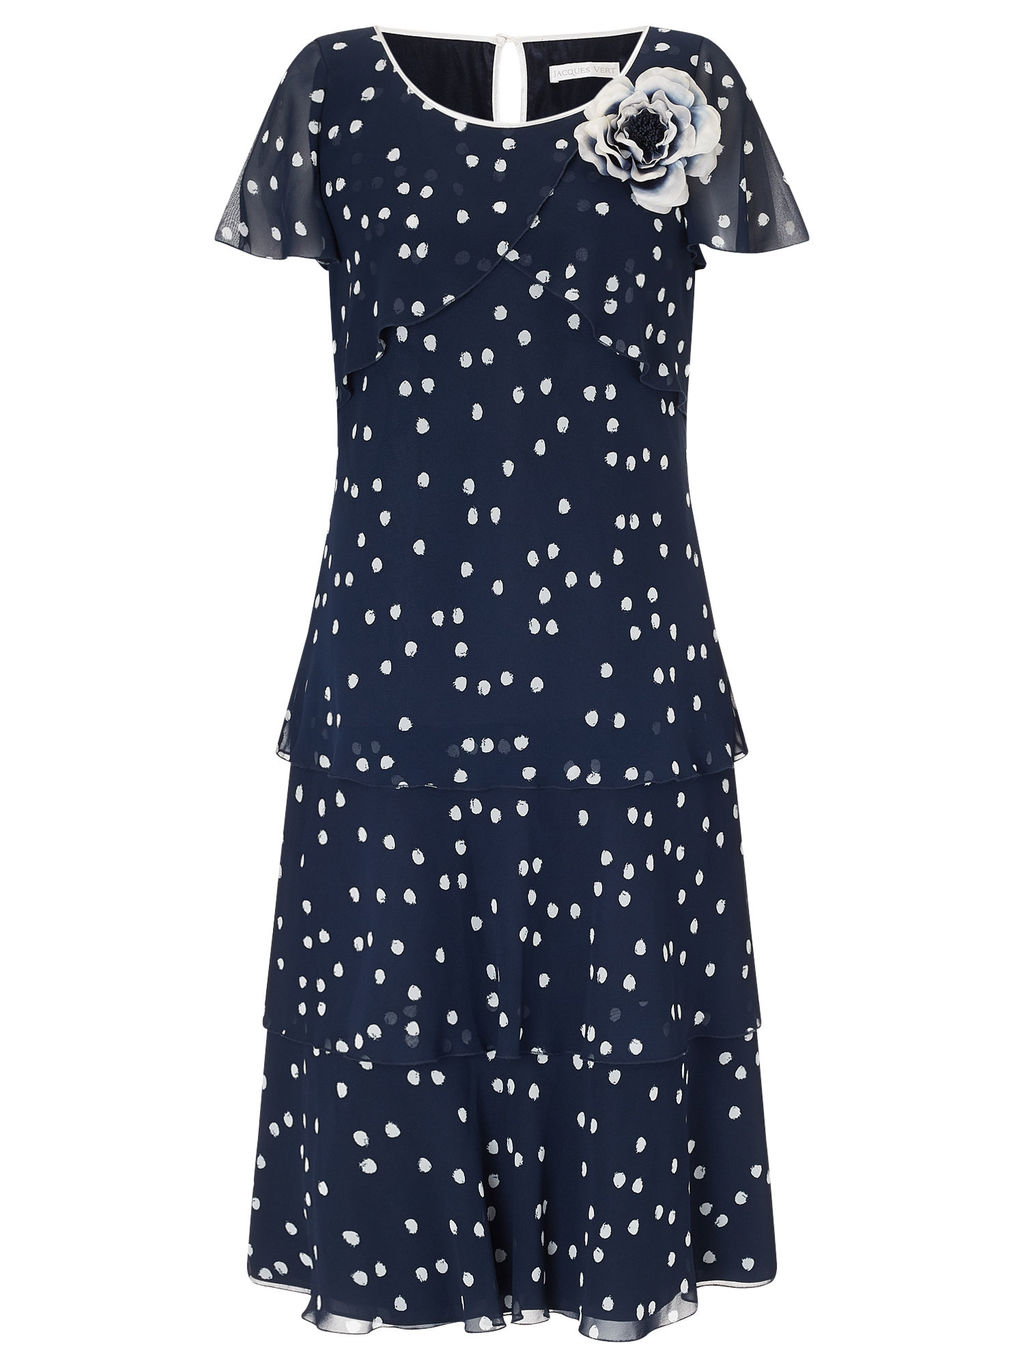 Brushstroke Spot Dress - style: shift; length: below the knee; neckline: round neck; sleeve style: capped; pattern: polka dot; secondary colour: white; predominant colour: navy; fit: soft a-line; fibres: polyester/polyamide - 100%; occasions: occasion; back detail: keyhole/peephole detail at back; sleeve length: short sleeve; texture group: sheer fabrics/chiffon/organza etc.; pattern type: fabric; pattern size: standard; embellishment: corsage; season: a/w 2015